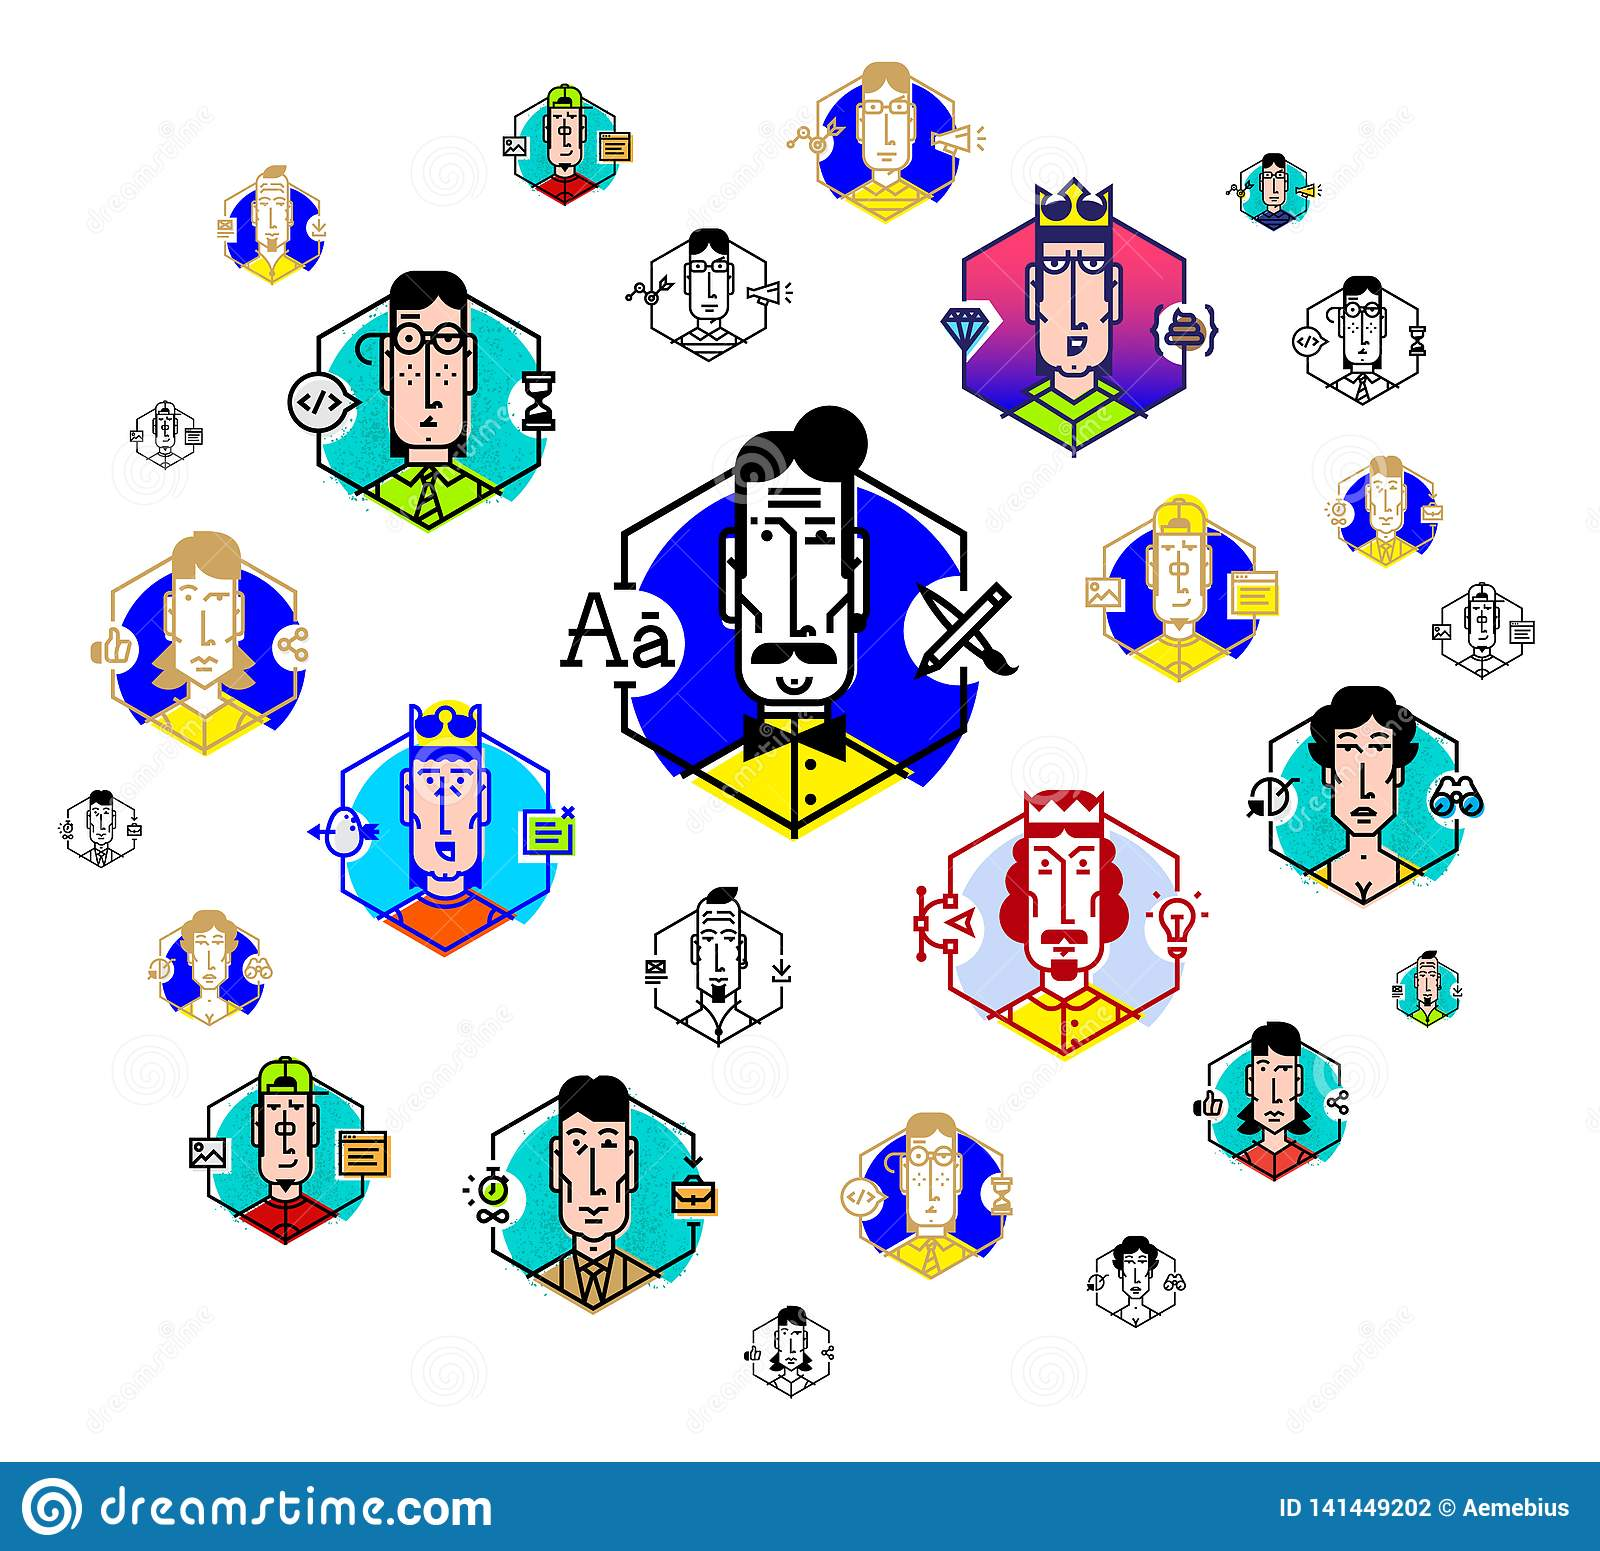 Social network, people communicate. Vector flat illustration. The icons are isolated on a white background. People of the